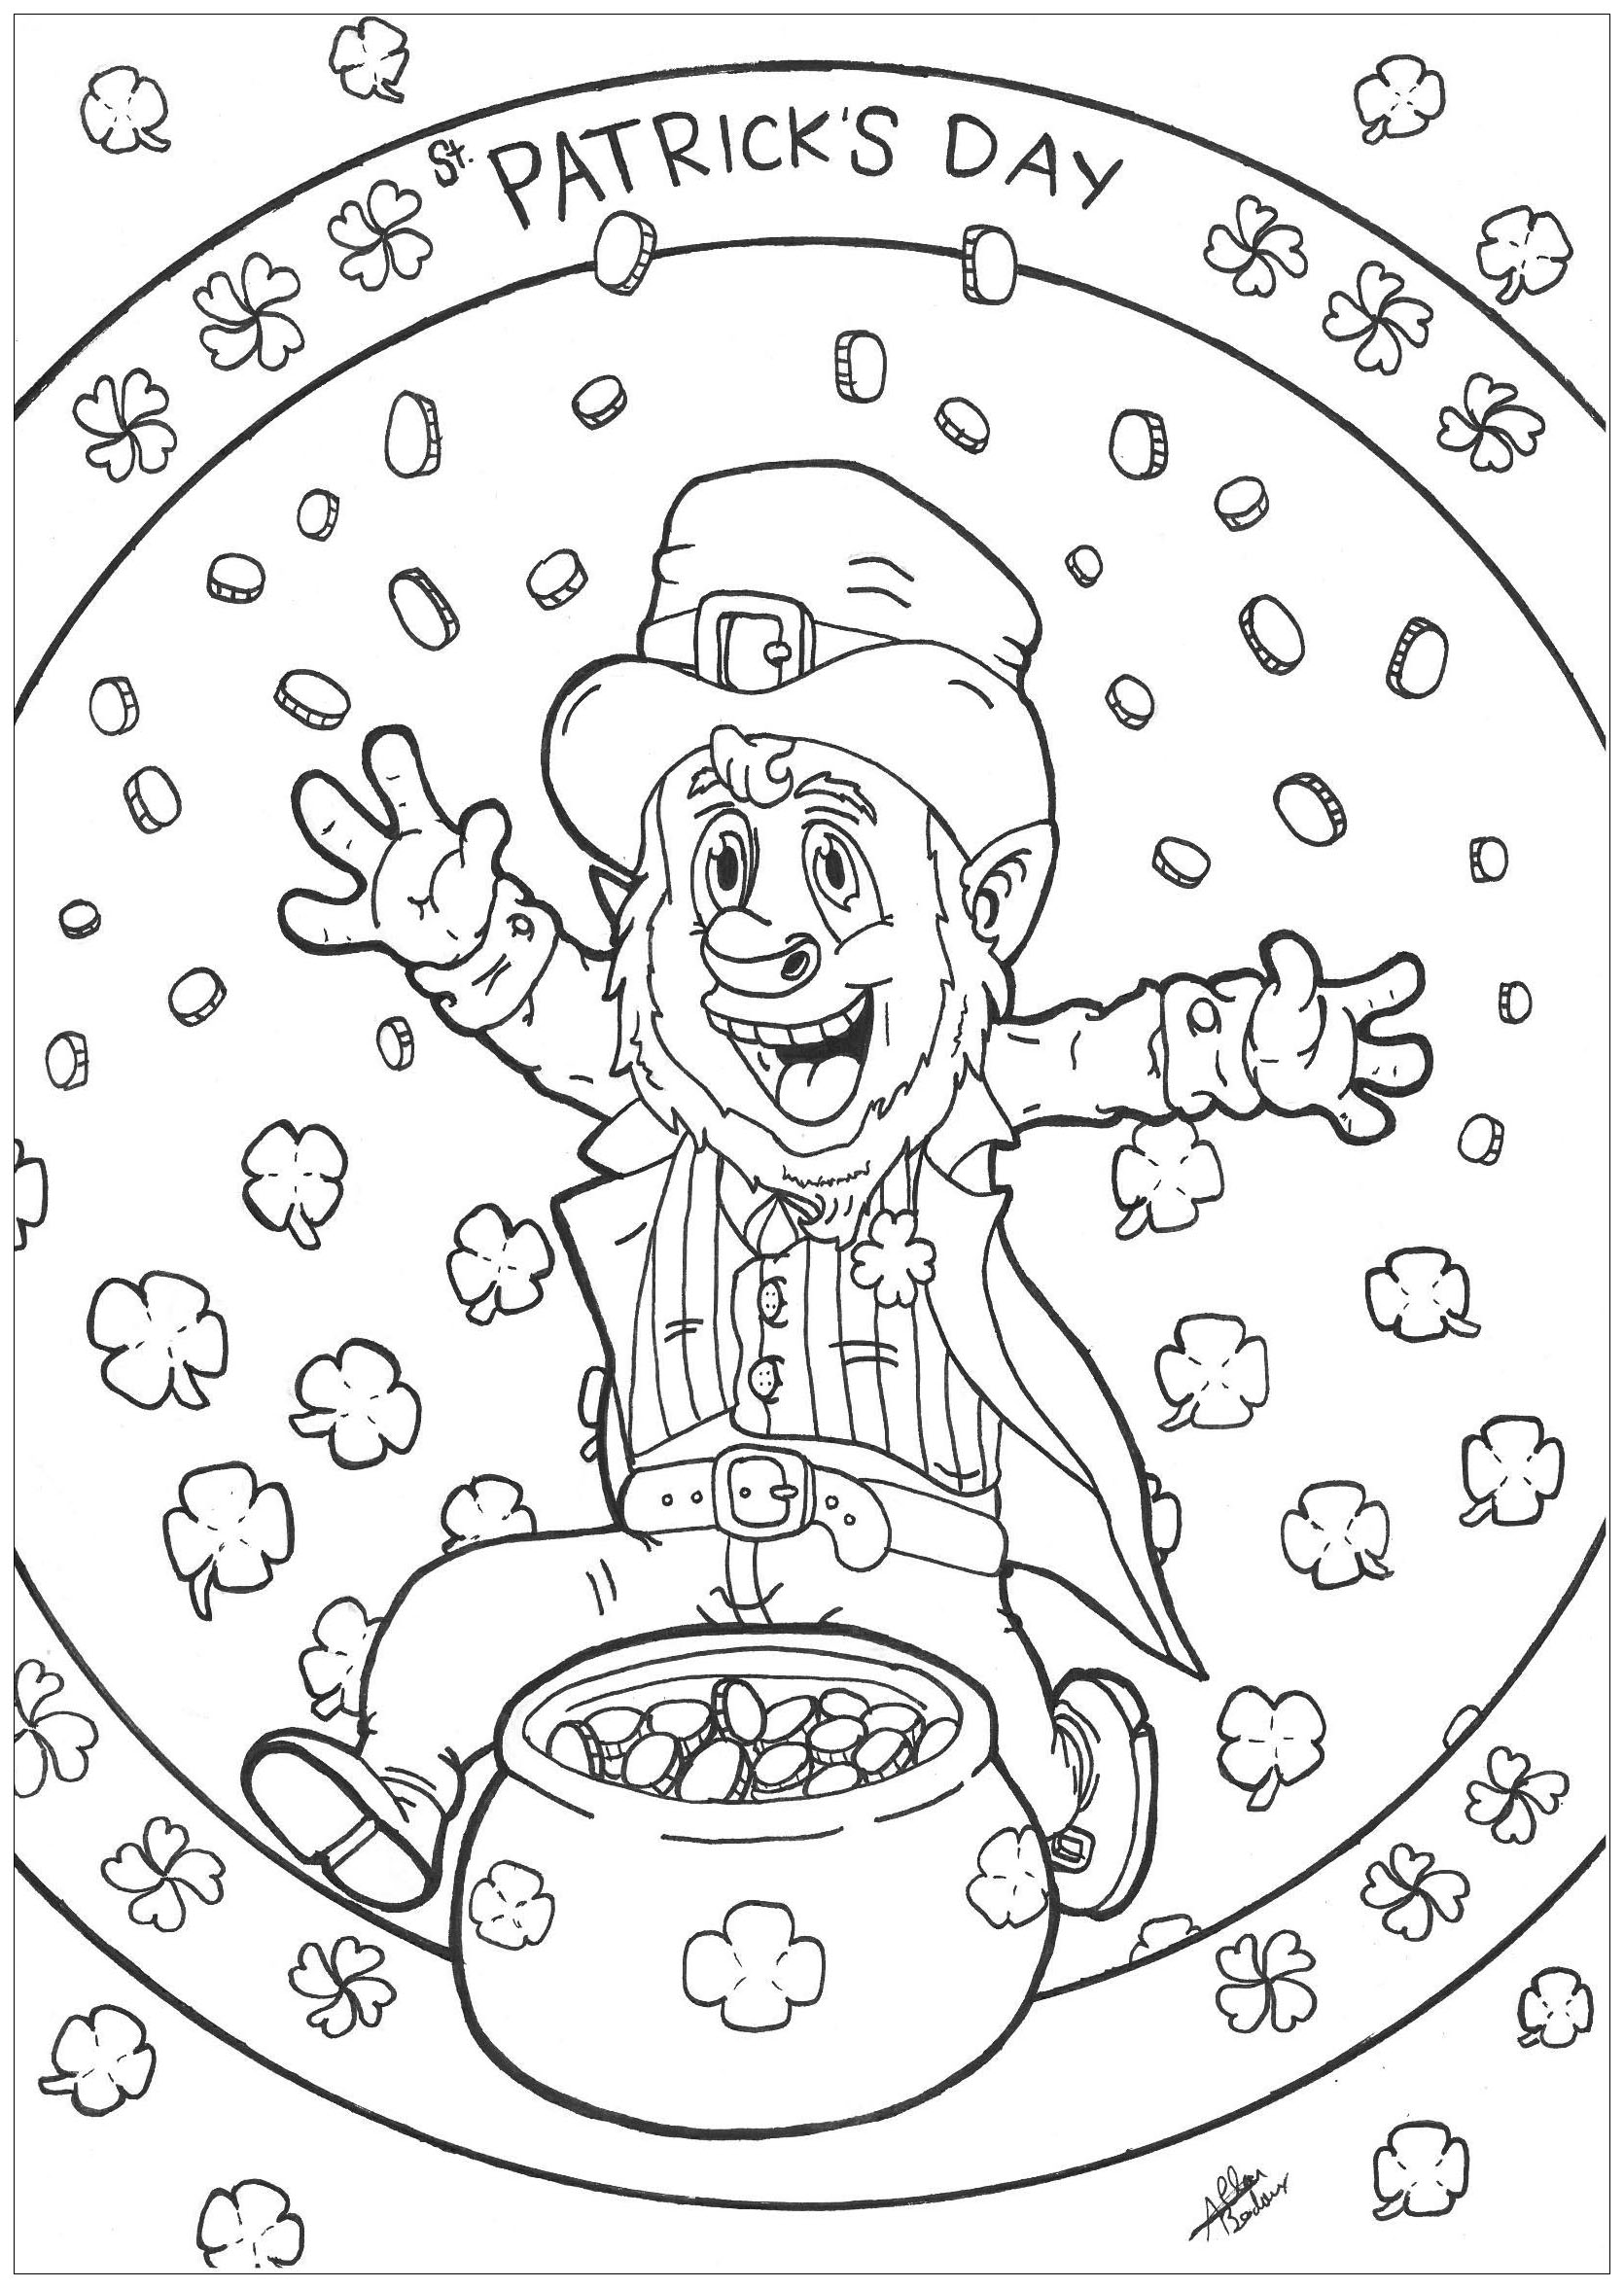 Coloring page adult leprechaun patrick day